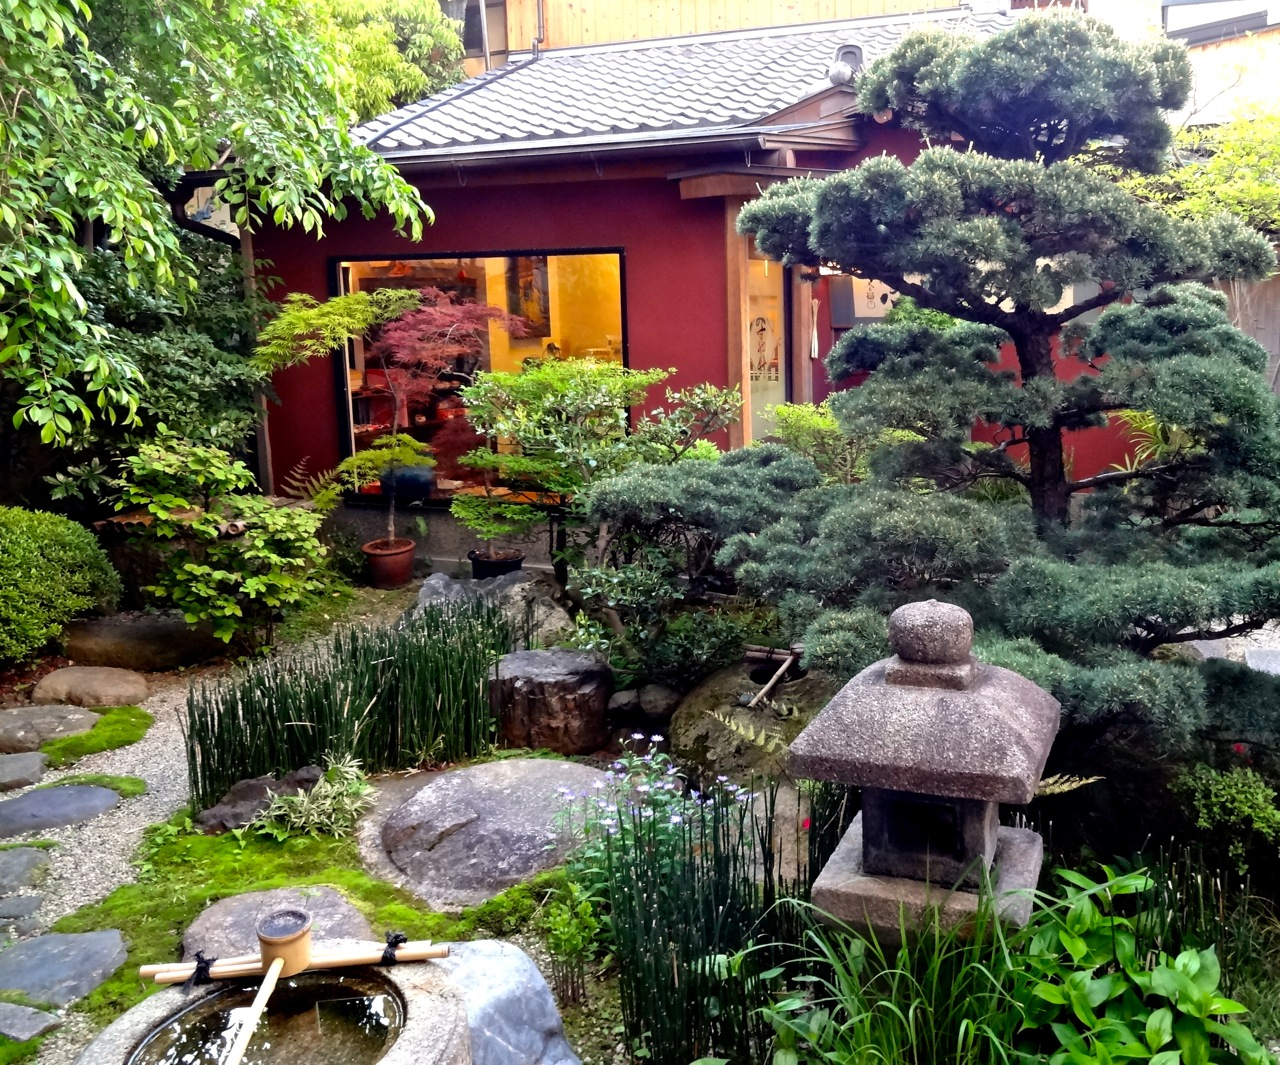 The art of the zen garden travel the world over - Jardines japoneses fotos ...